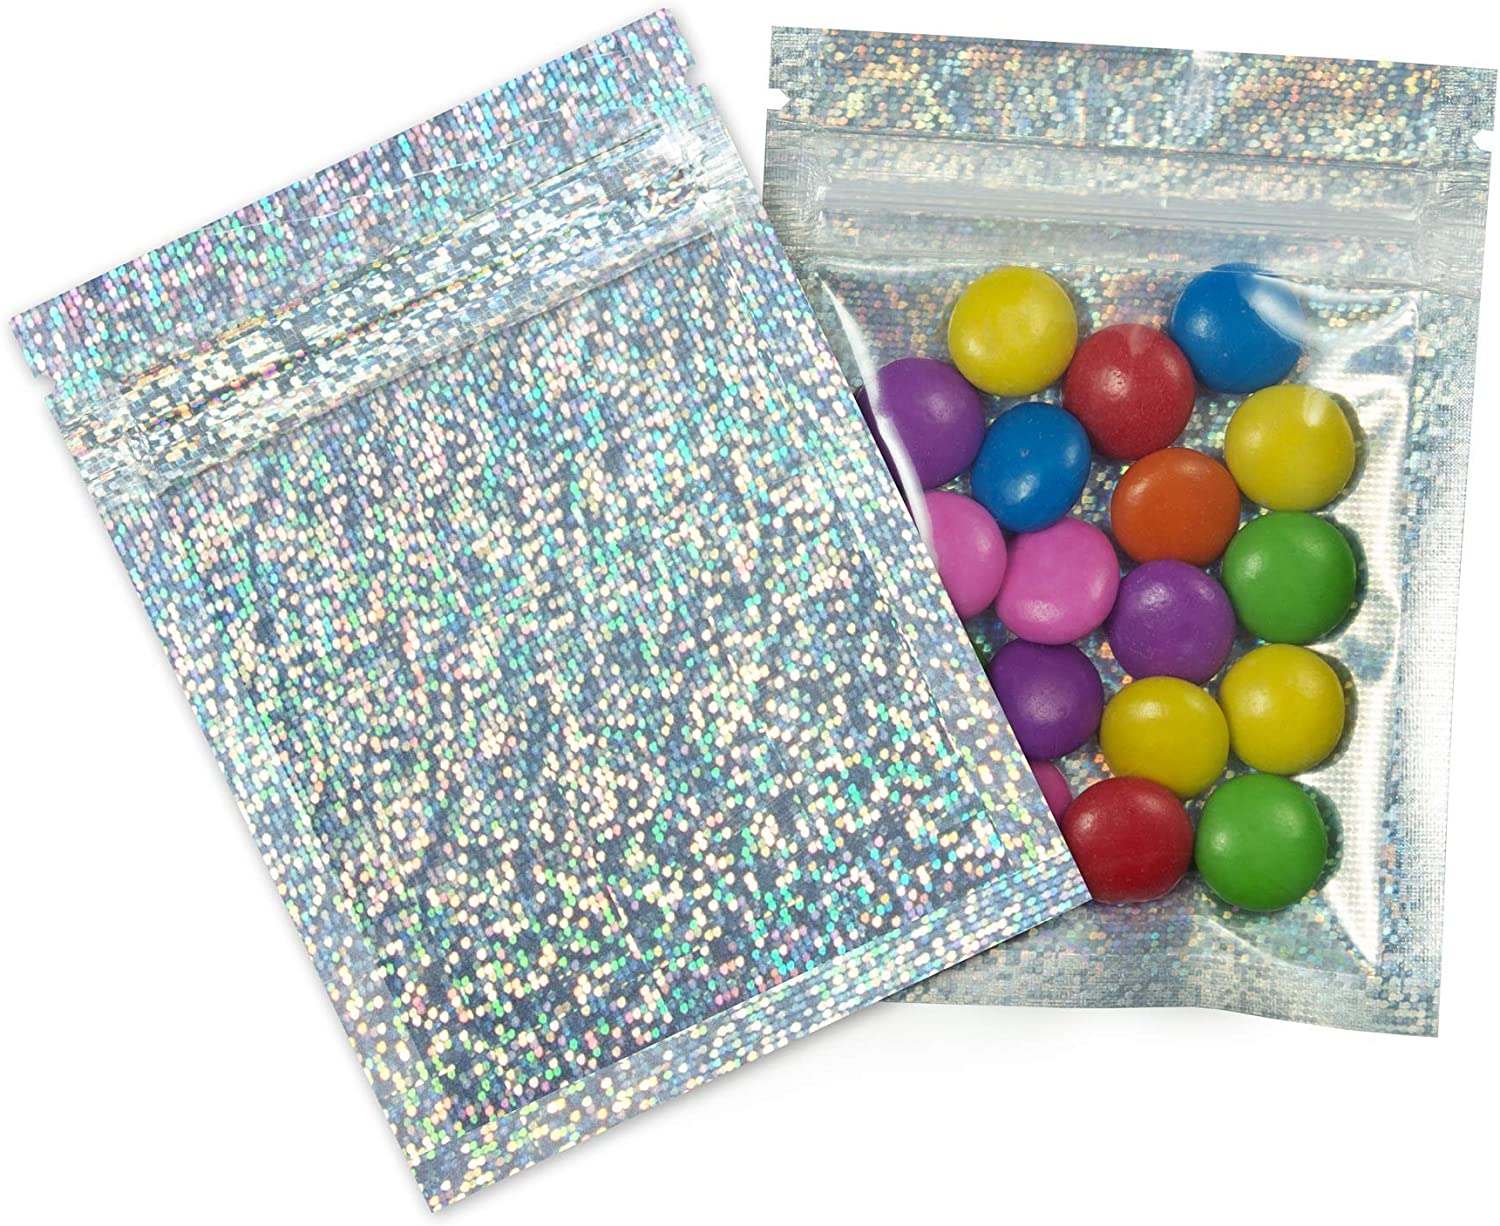 InfinitePack Mylar Resealable SmellProof Bag, 3x4 Flat Ziplock Bag - Food Storage Pouch for Snack, Coffee, Candy, Lip Gloss, Jewelry Packaging Grip Seal - Holographic Glitter Foil Bag, 100 Pack